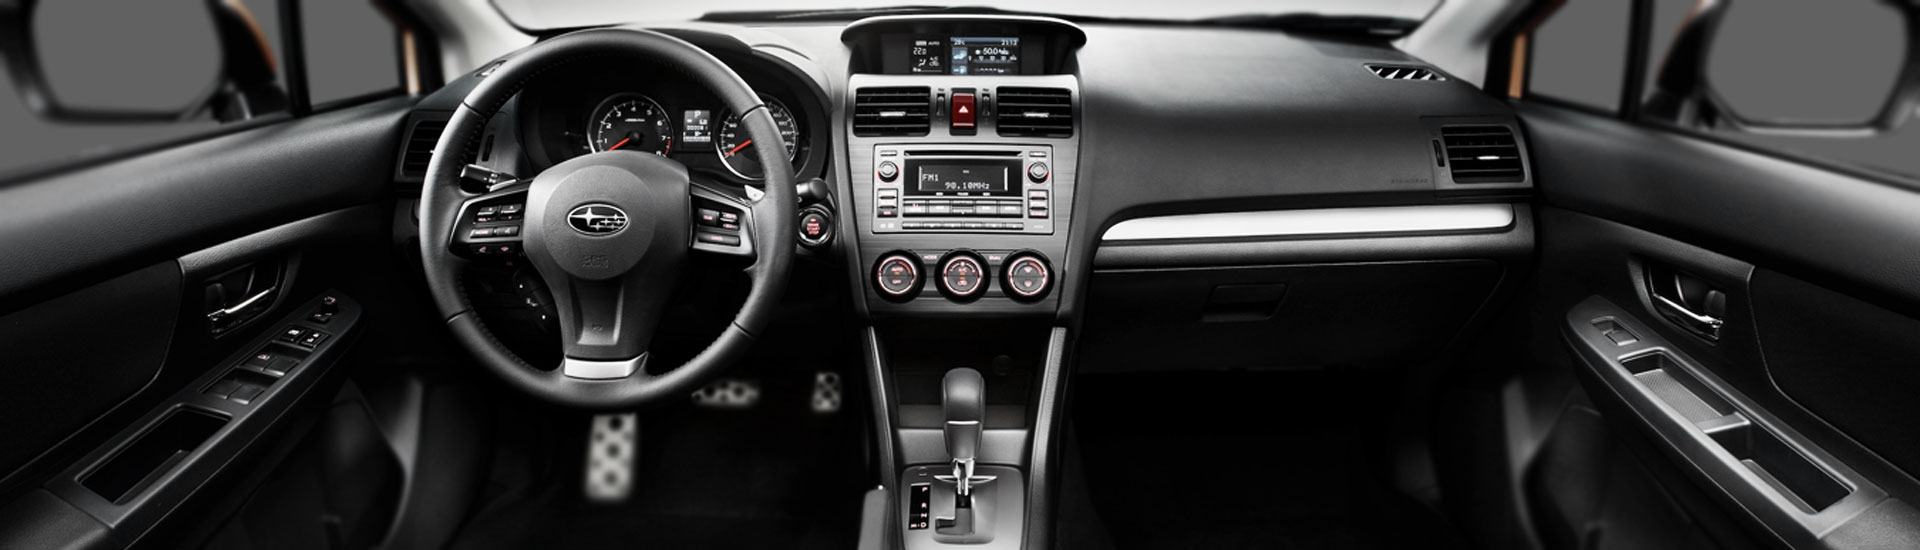 2007 Subaru Impreza Custom Dash Kits